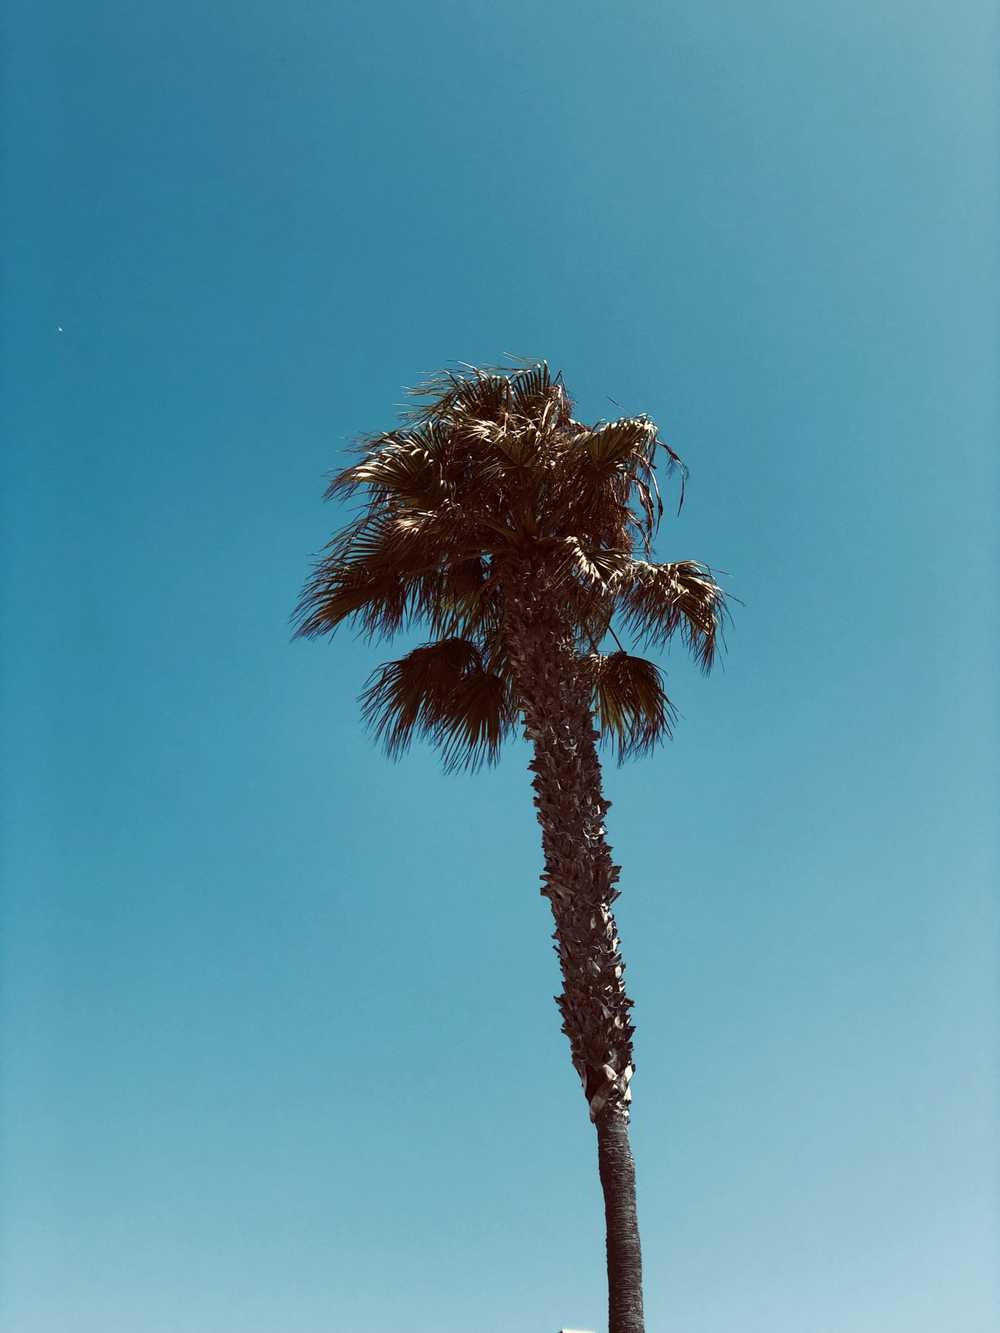 green-leafed palm tree under a calm blue sky